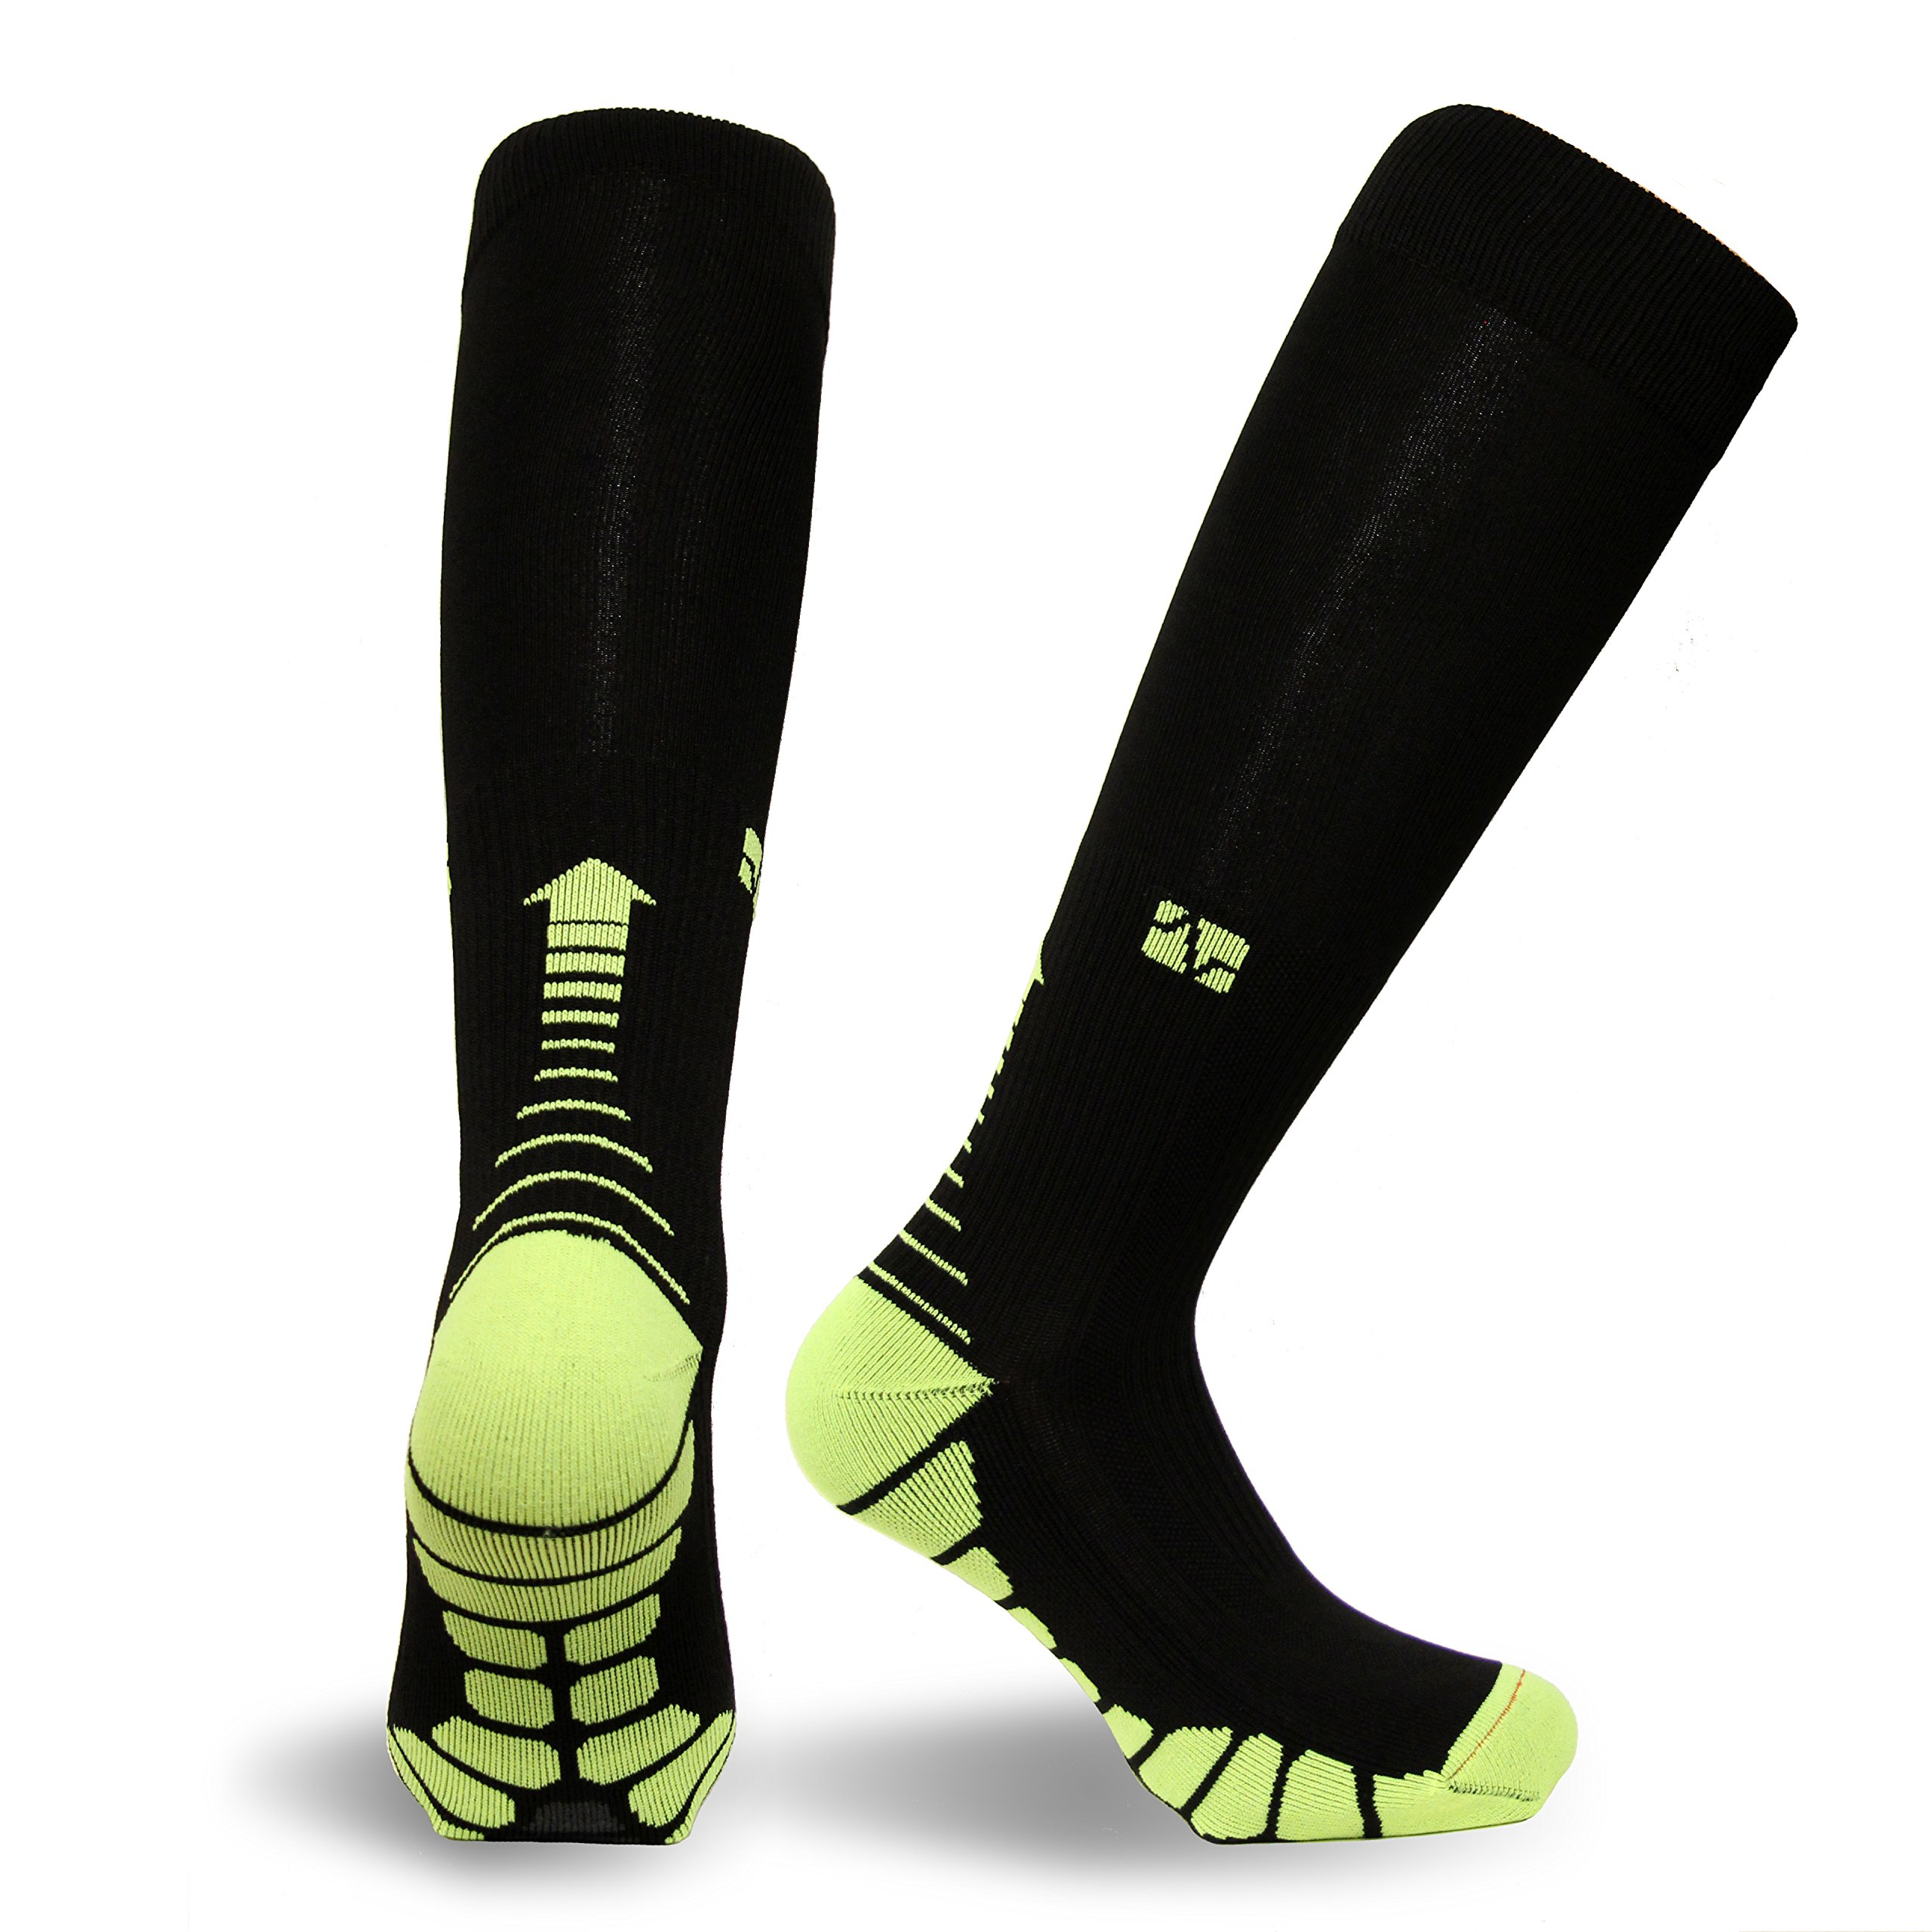 Vitalsox Italy-Patented Compression VT1211,Small,Black/Neon by Vitalsox